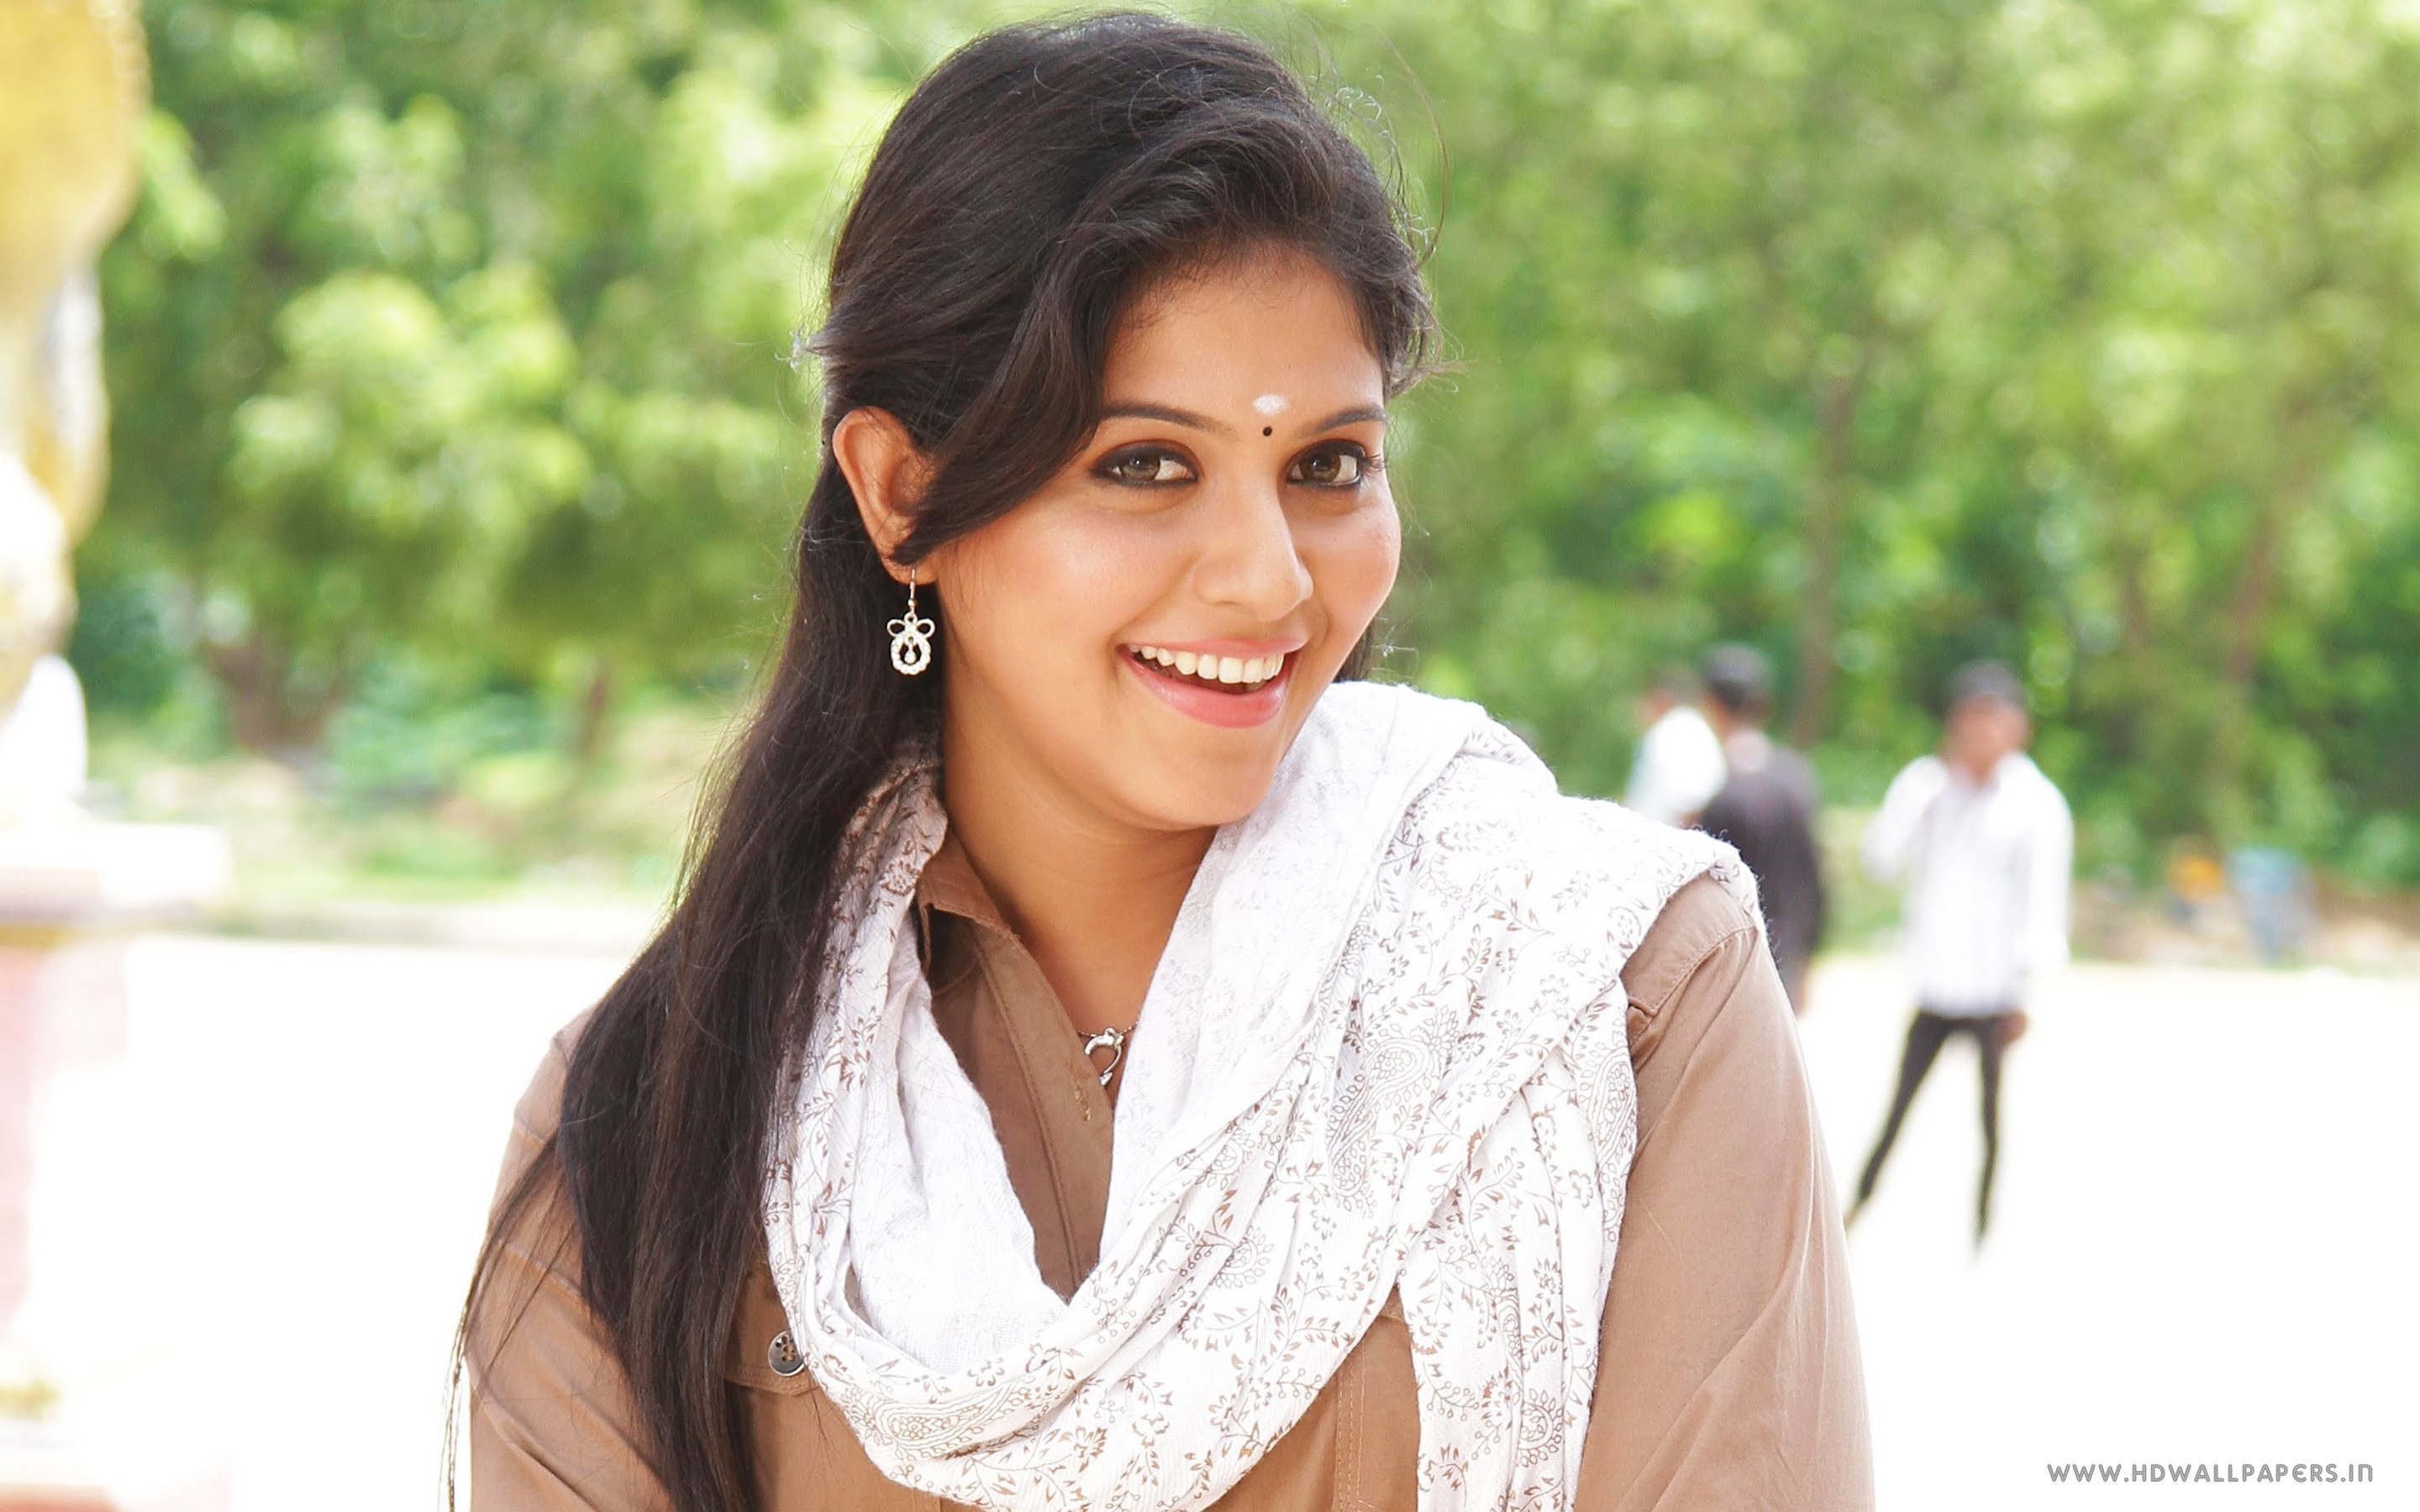 South Actress Anjali Wallpapers In Jpg Format For Free Download